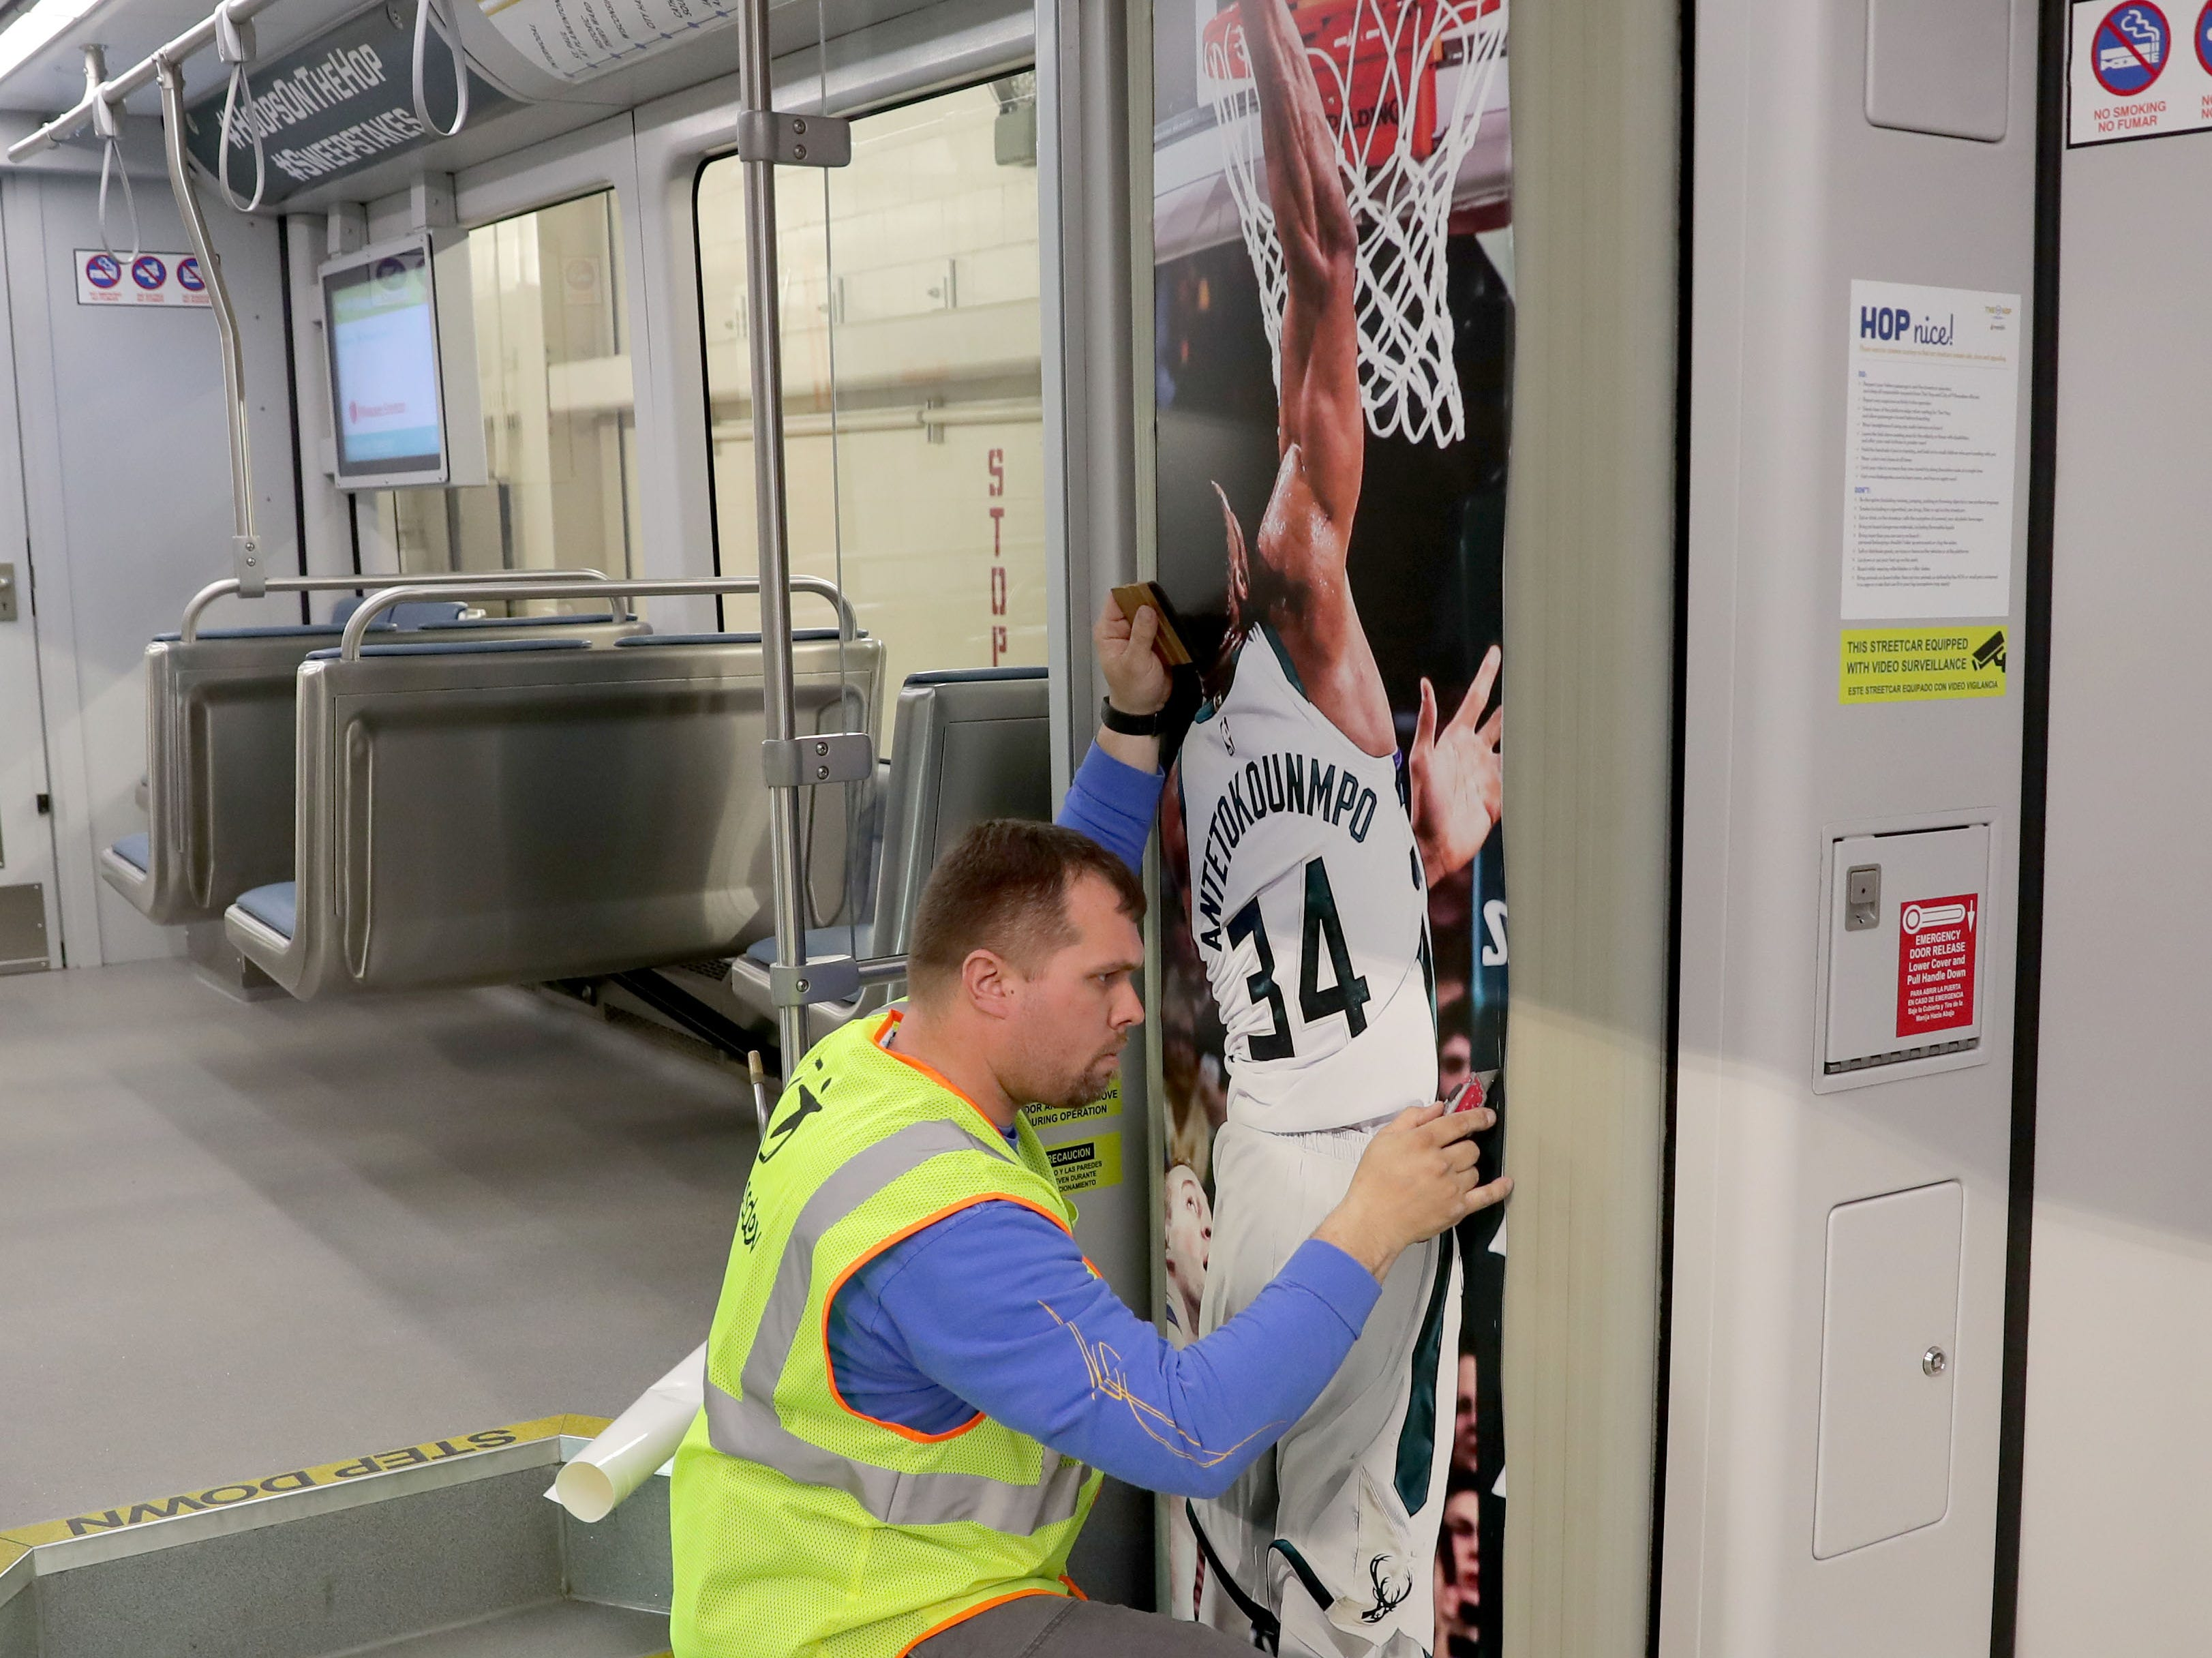 (OK FOR FRIDAY 4/12 PRINT - ONLINE EMBARGO UNTIL 10:45 FRIDAY 4/12)  Matt Callies with Signs and Lines by Stretch works on placing a Giannis Antetokounmpo poster up. One of Milwaukee's streetcars, known as The Hop is fitted with a replica Bucks court on the floor in support of the Bucks playoff run in Milwaukee on Thursday, April 11, 2019. In addition to the interior flair, the exterior was being wrapped in Milwaukee Bucks colors.  Photo by Mike De Sisti/Milwaukee Journal Sentinel